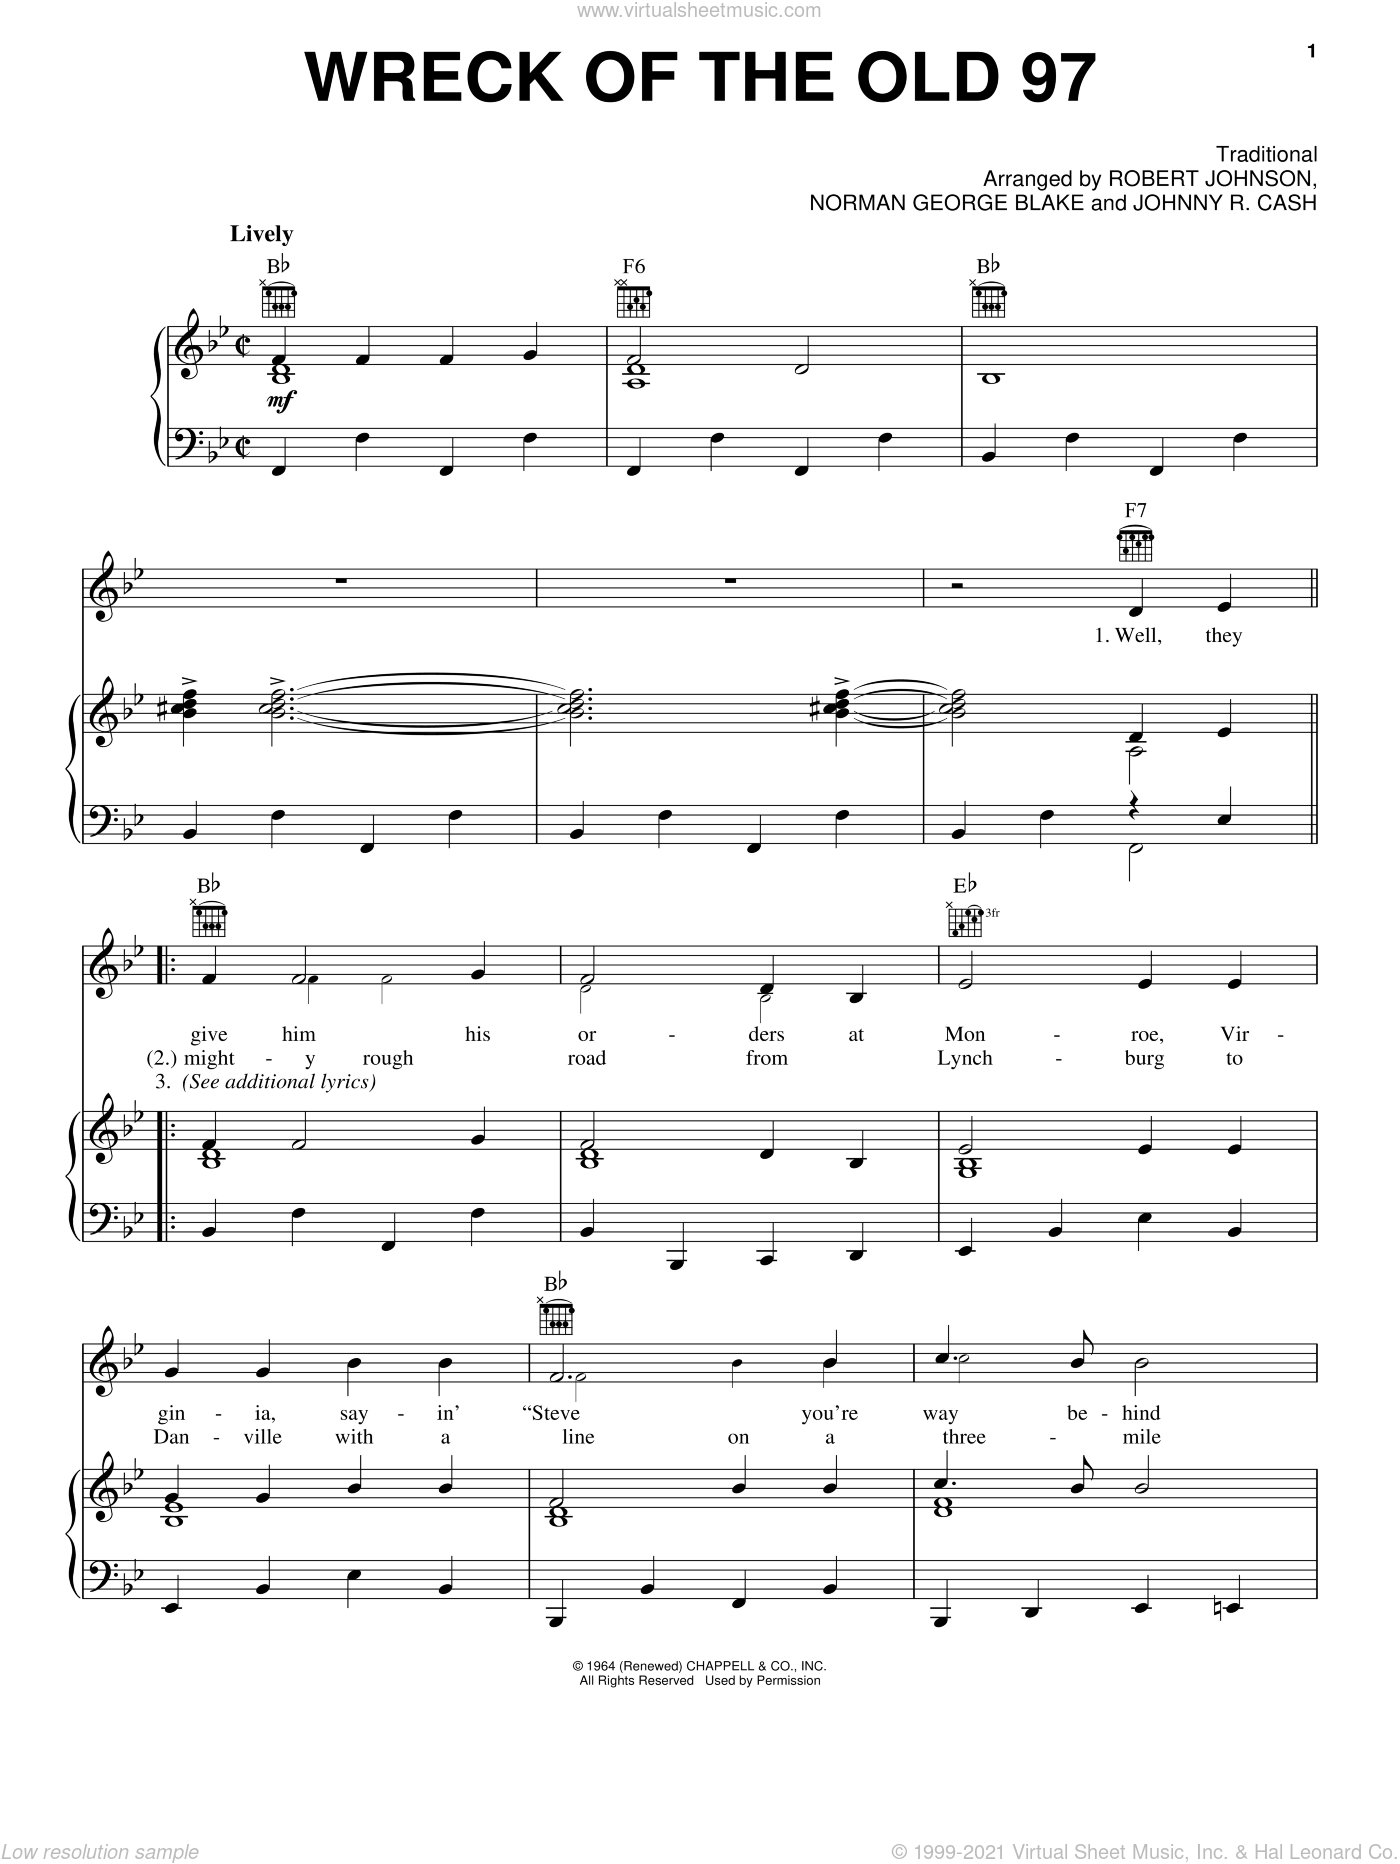 Wreck Of The Old 97 sheet music for voice, piano or guitar by Johnny Cash and Miscellaneous, intermediate skill level